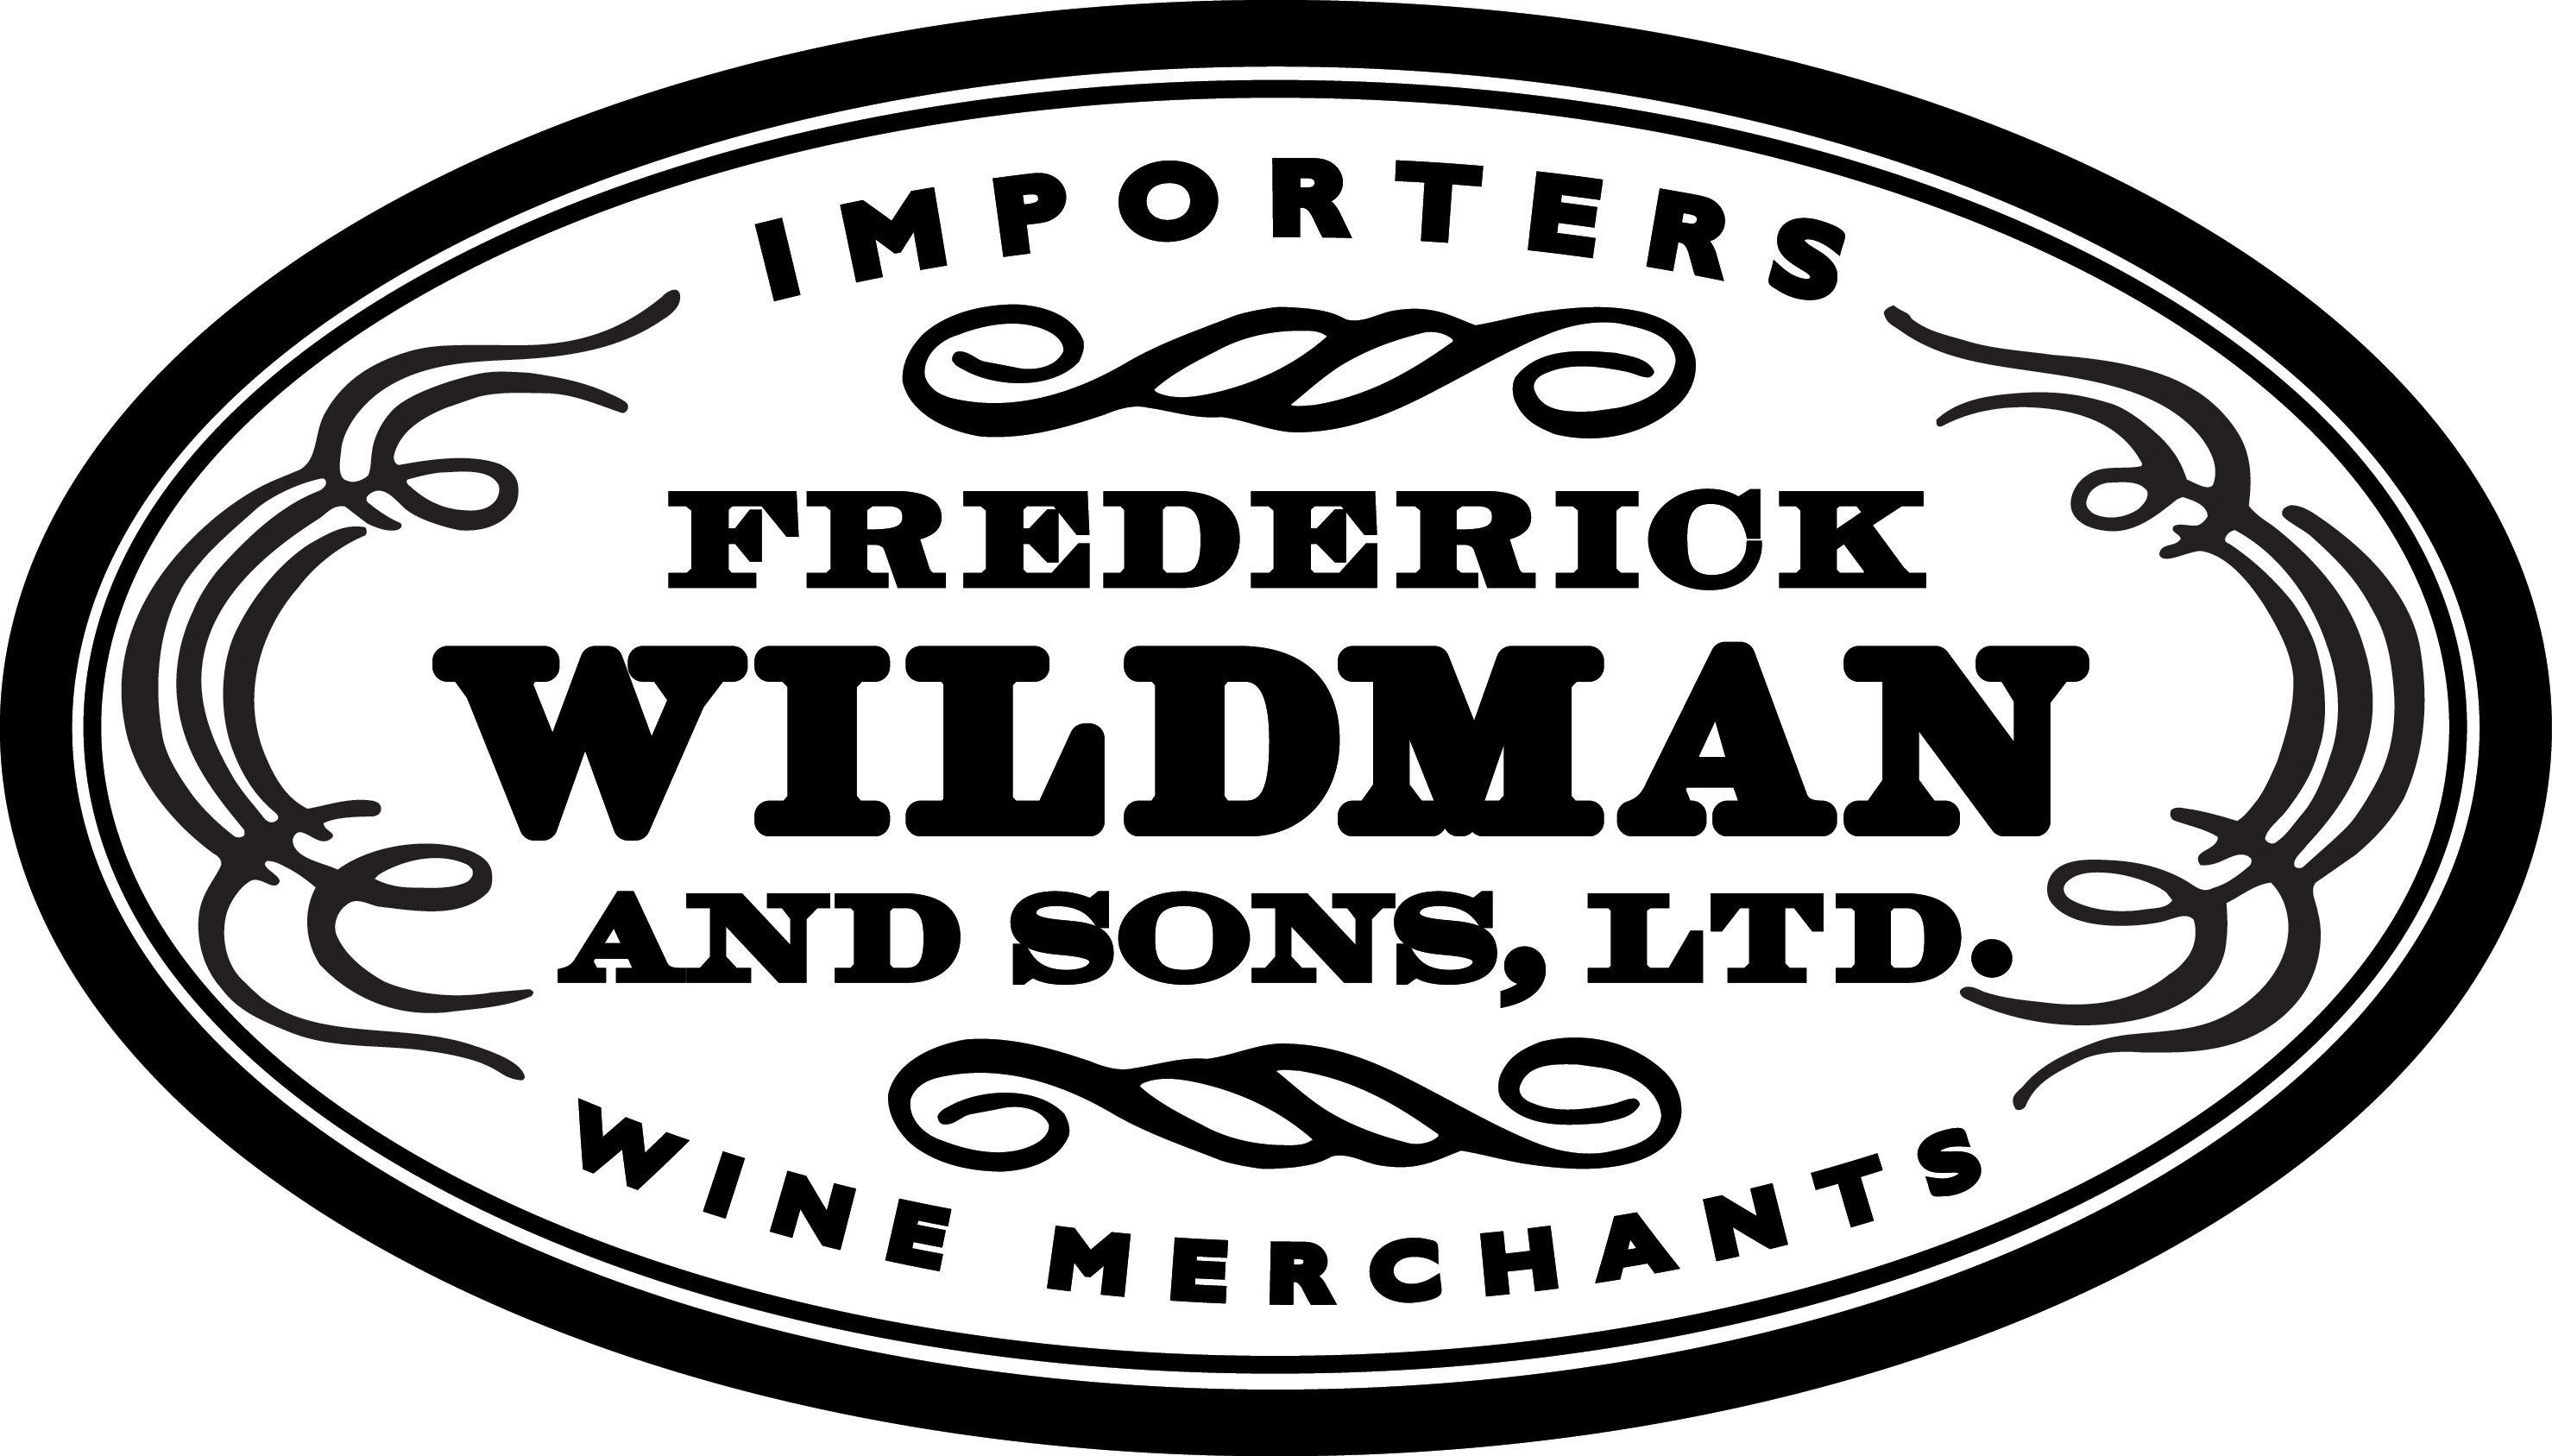 Frederick Wildman & Sons